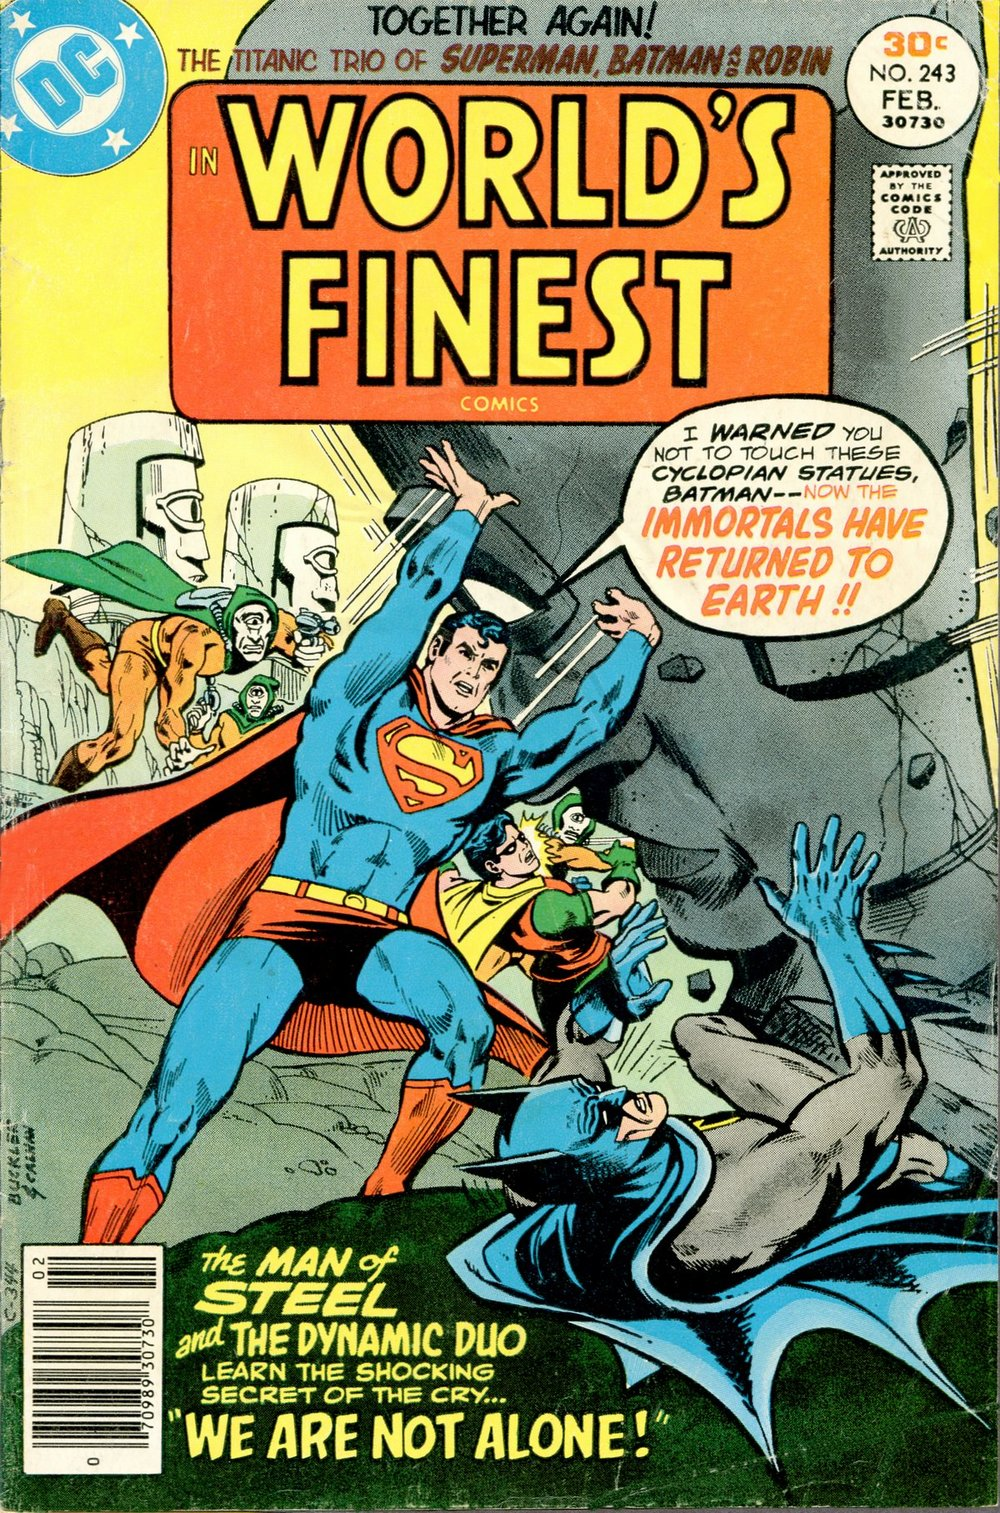 World's Finest Comics (1941) #243, cover penciled by Rich Buckler & inked by John Calnan.